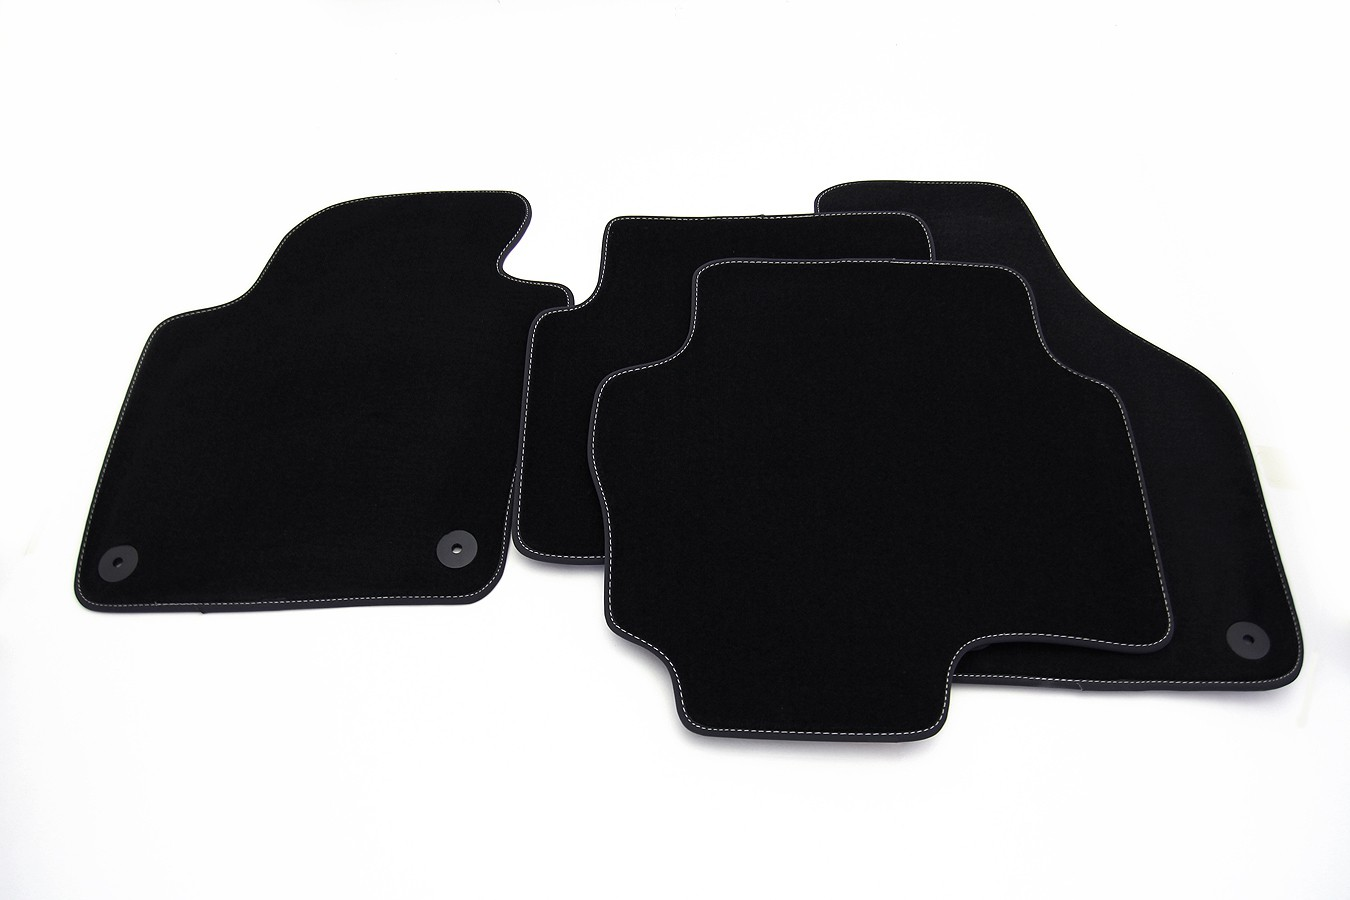 exclusive tapis de sol de voitures pour vw sharan seat. Black Bedroom Furniture Sets. Home Design Ideas